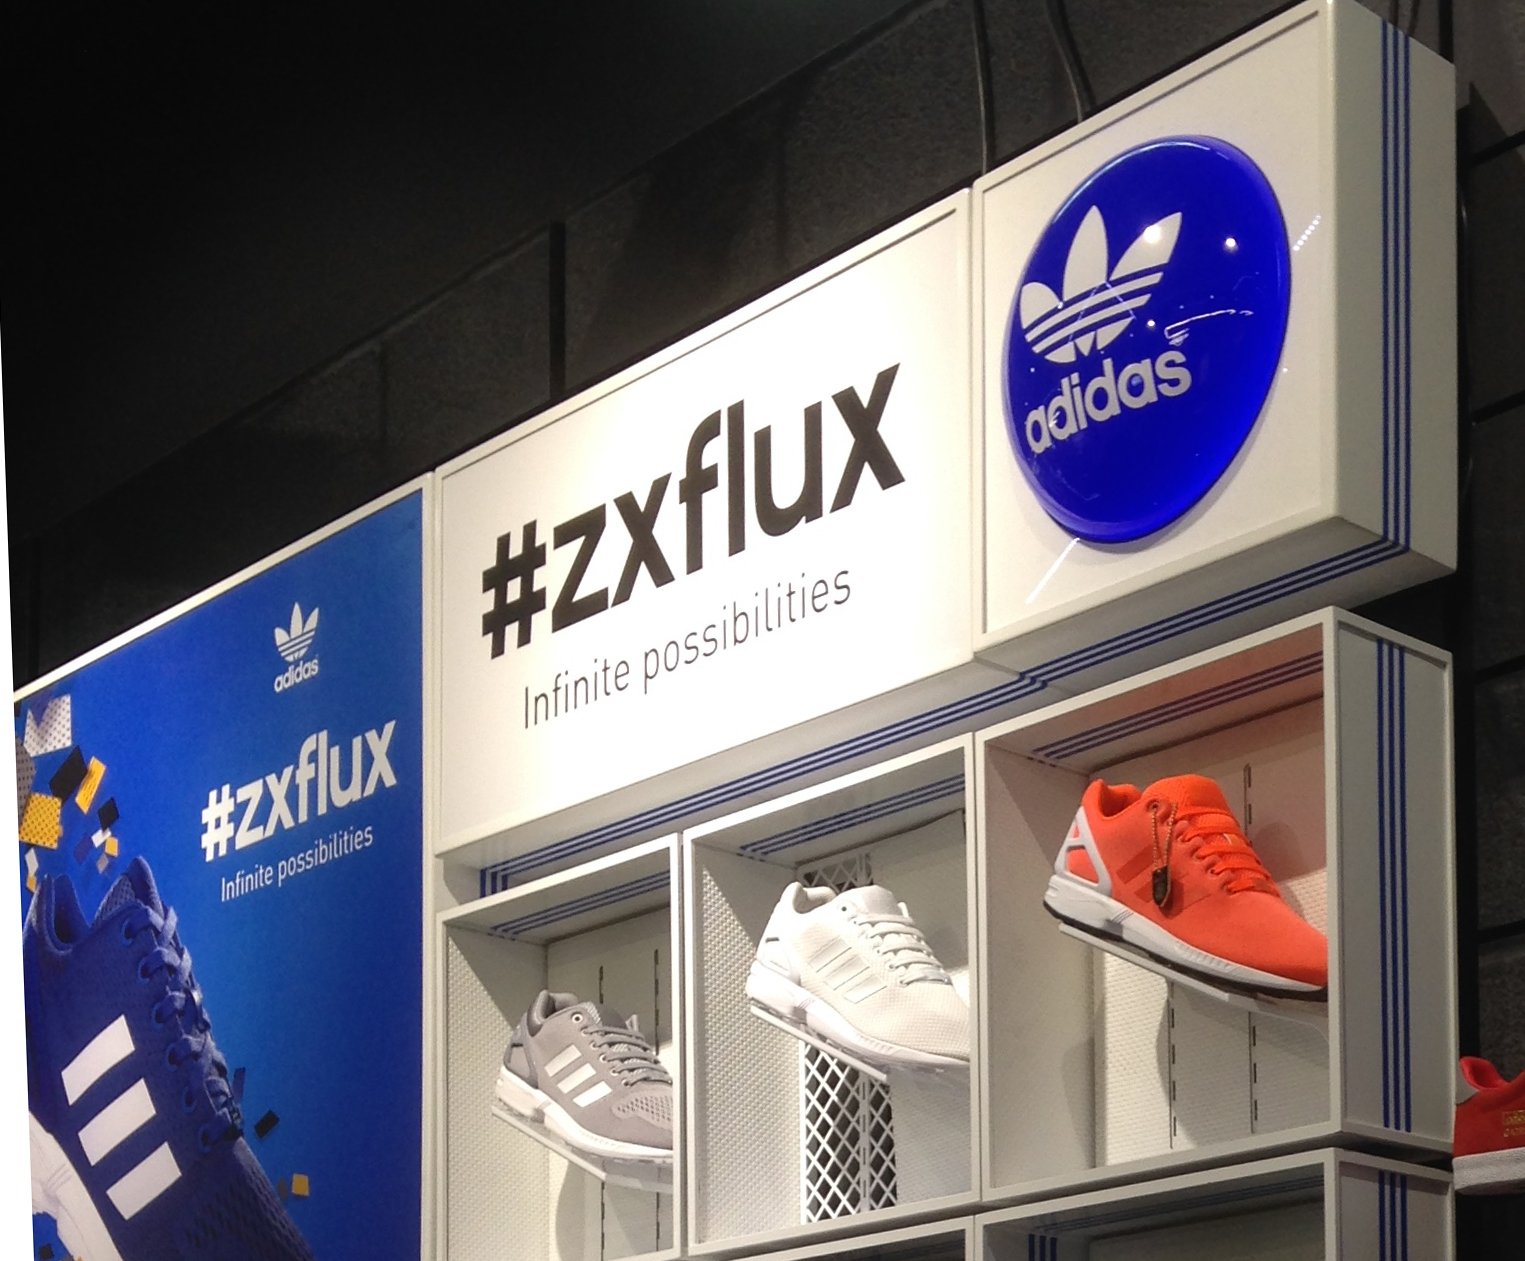 Adidas Footwear Displays for JD Sports